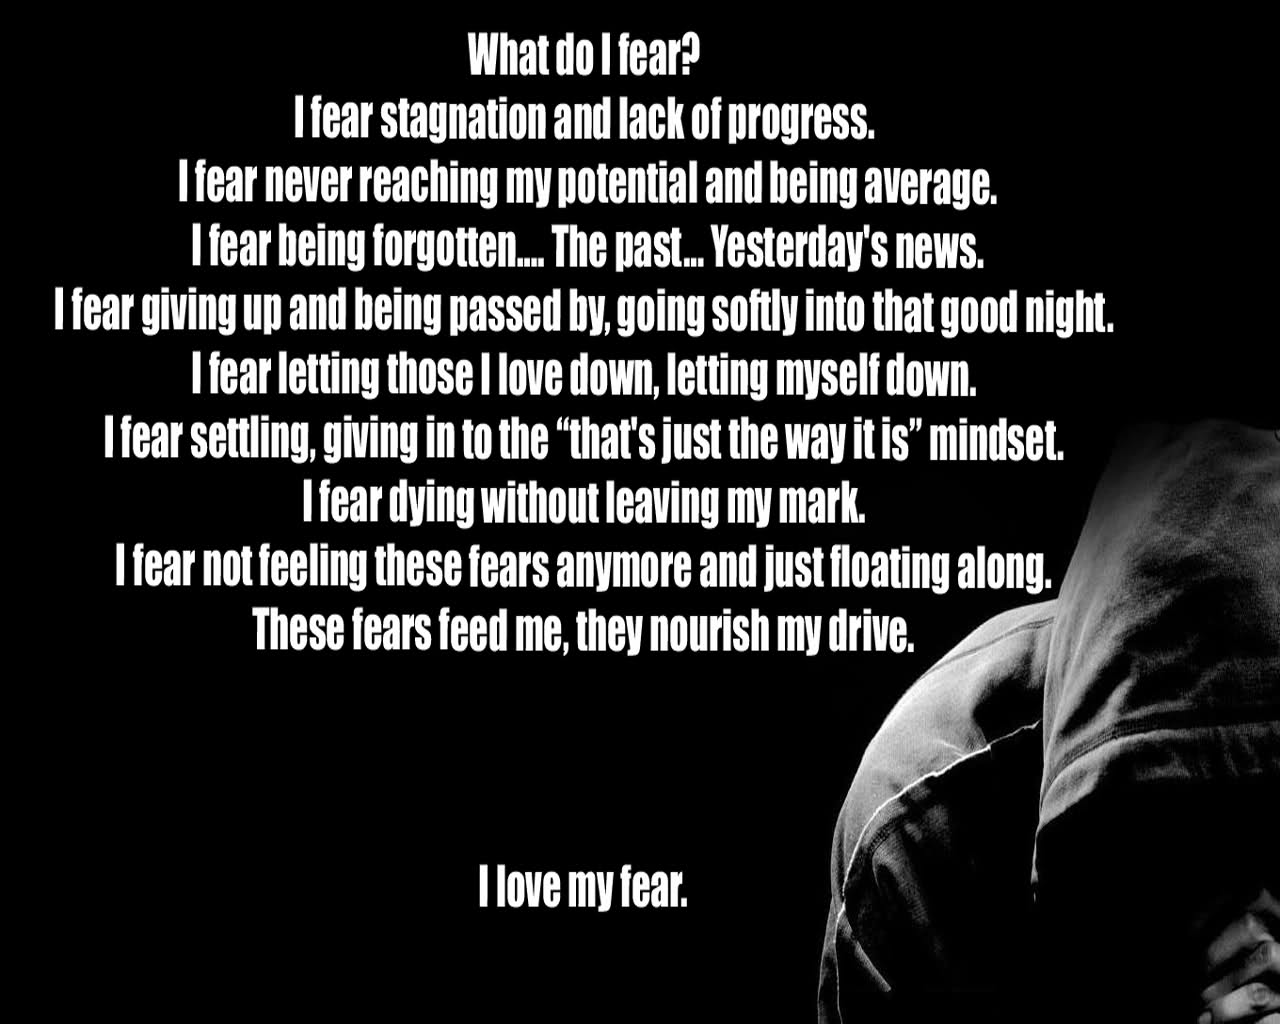 man loses half his brain in mind what is your greatest fear our deepest fear u2026 i am a spartan what is your greatest